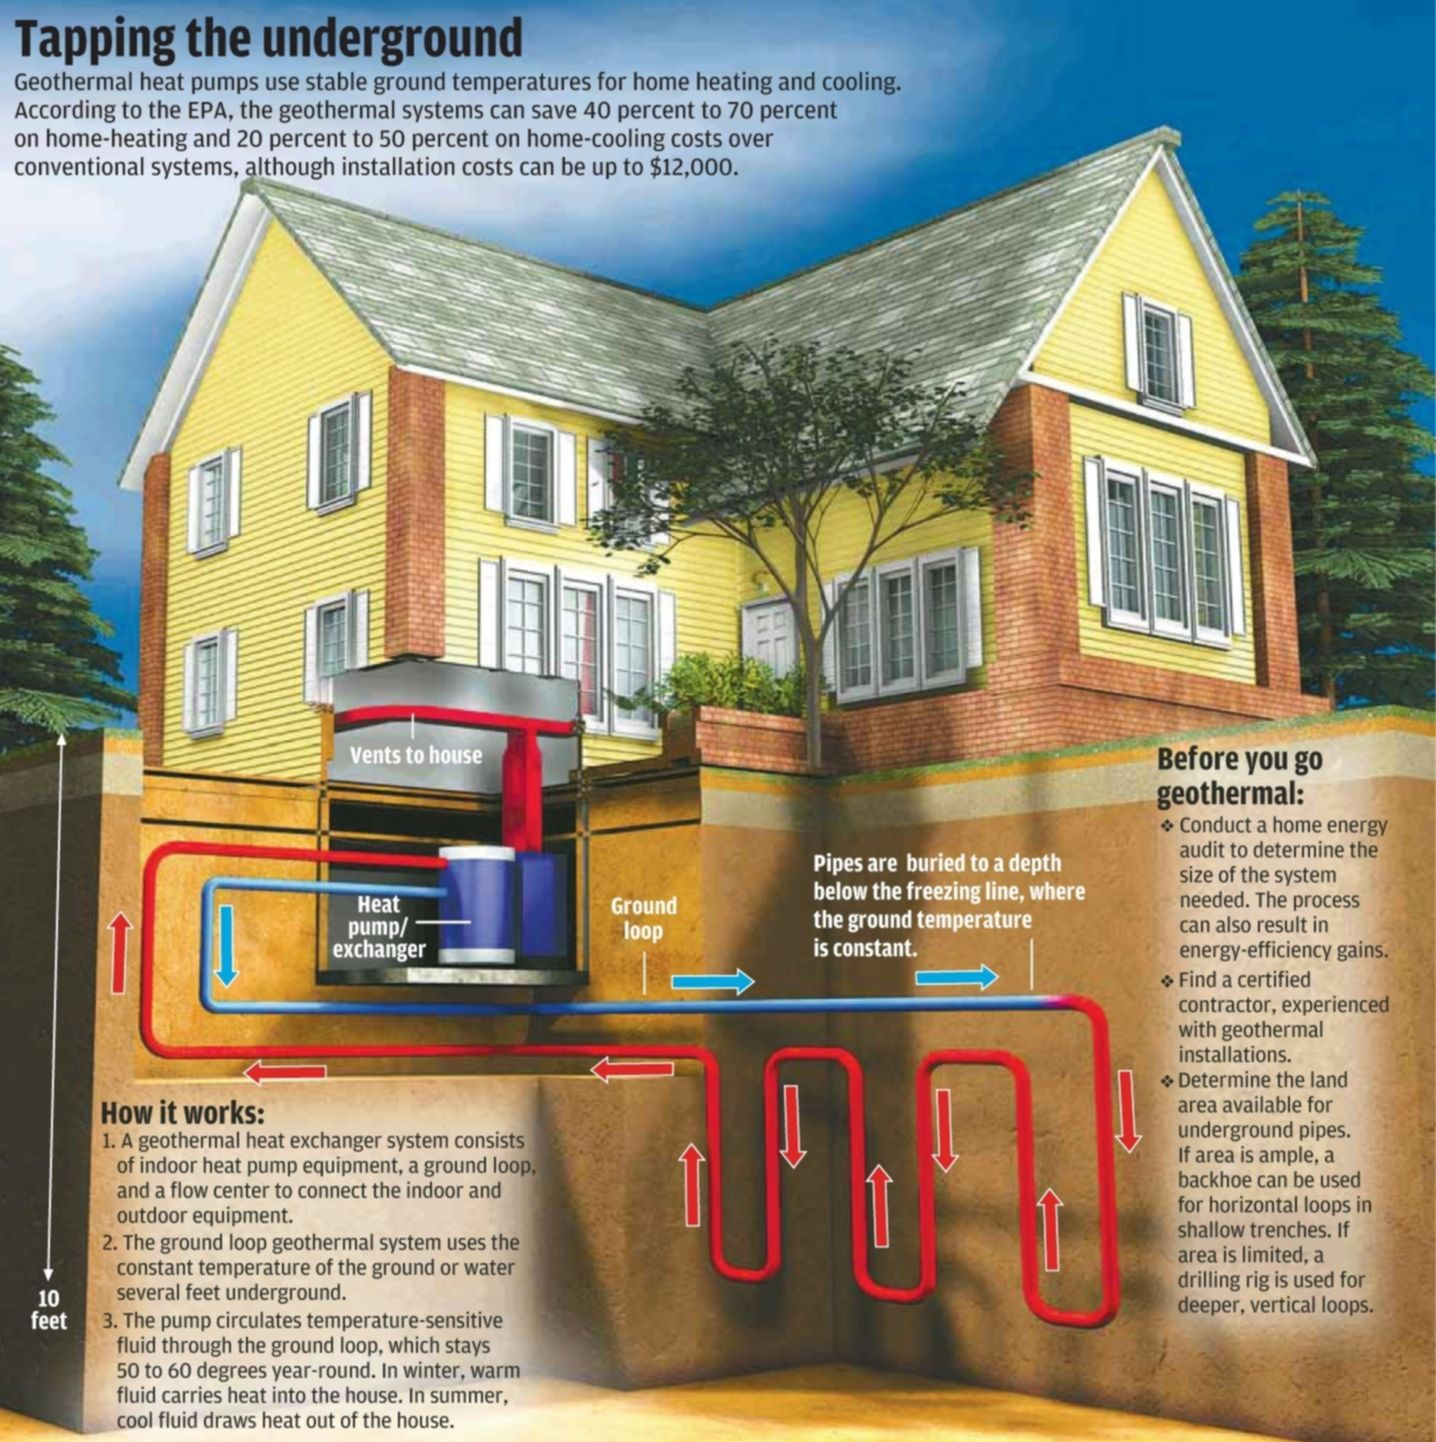 Earth assisted earth friendly geothermal heating for Geothermal house plans